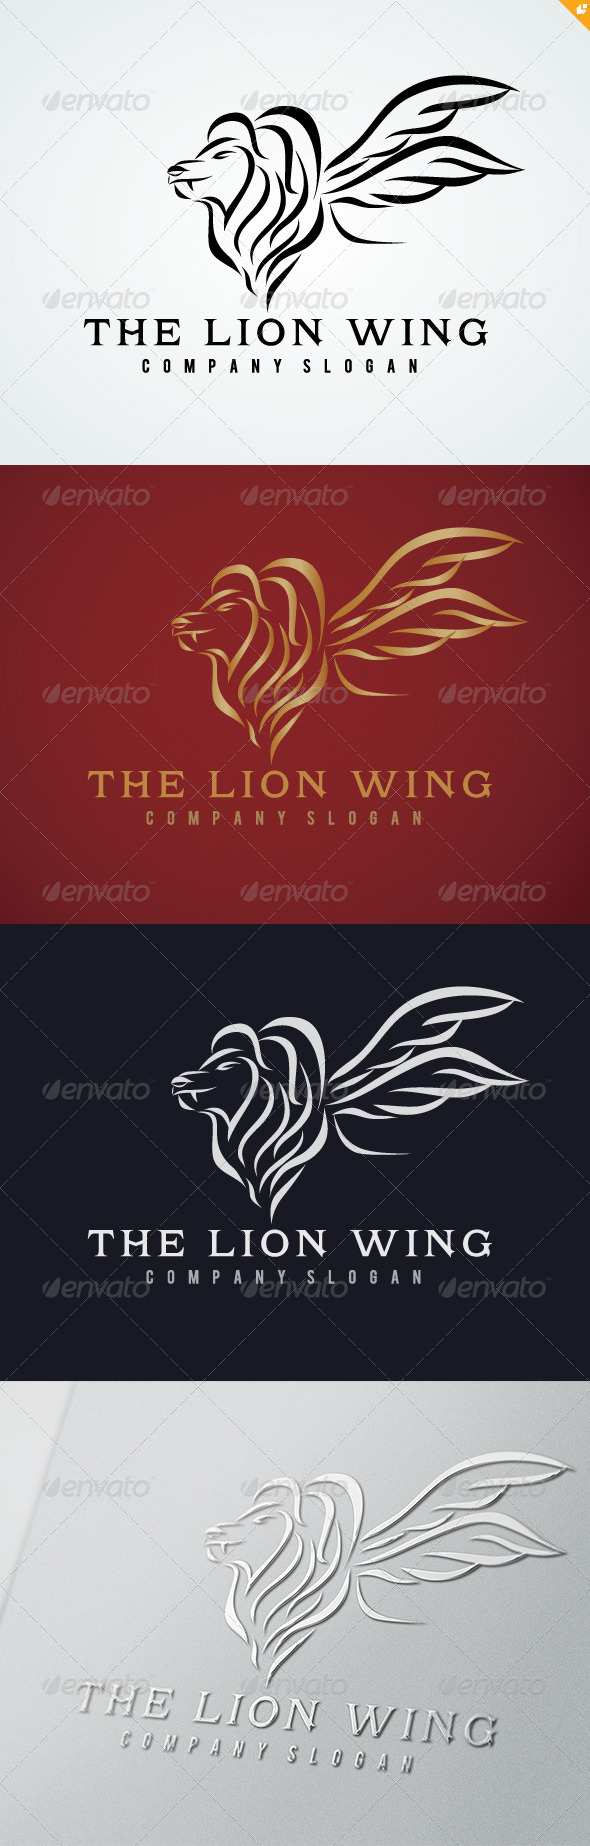 GraphicRiver The Lion Wing Logo 5018395